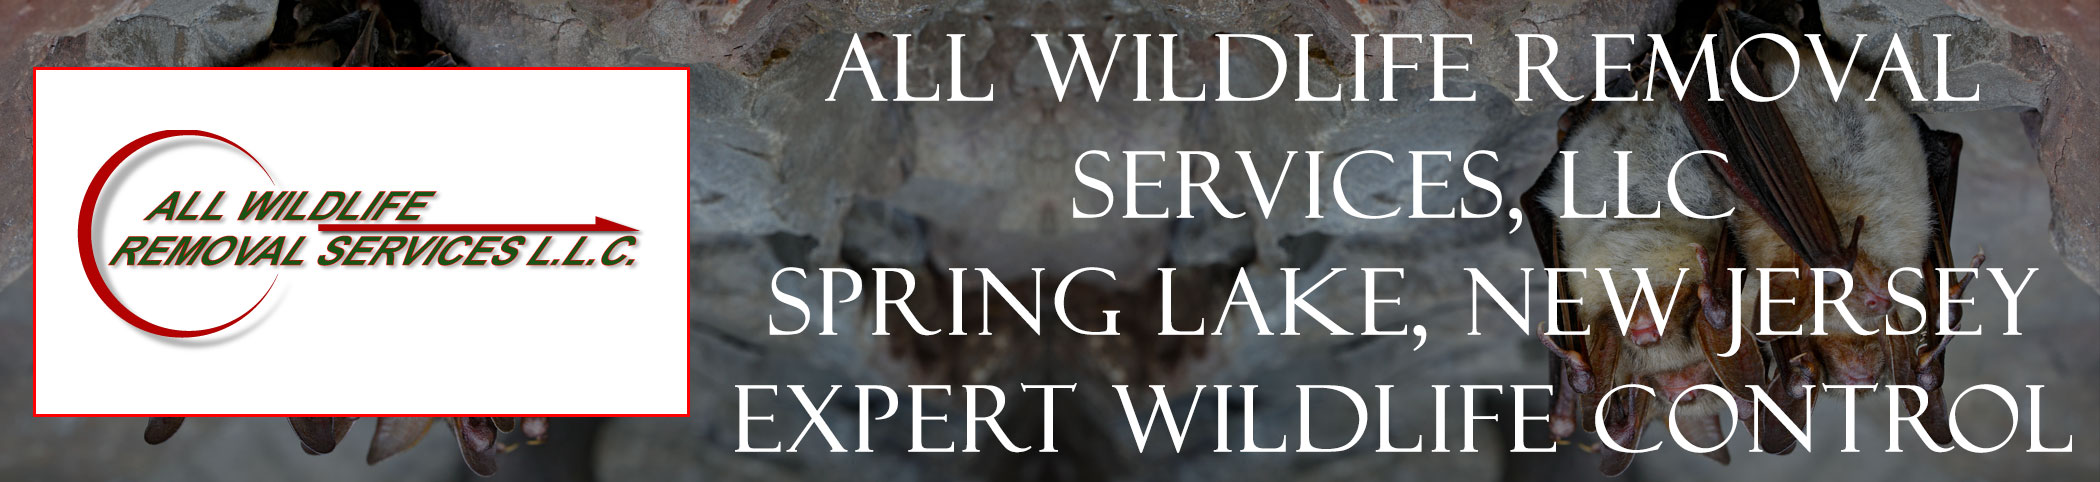 all-wildlife-removal-services-Spring Lake-new-jersey-header